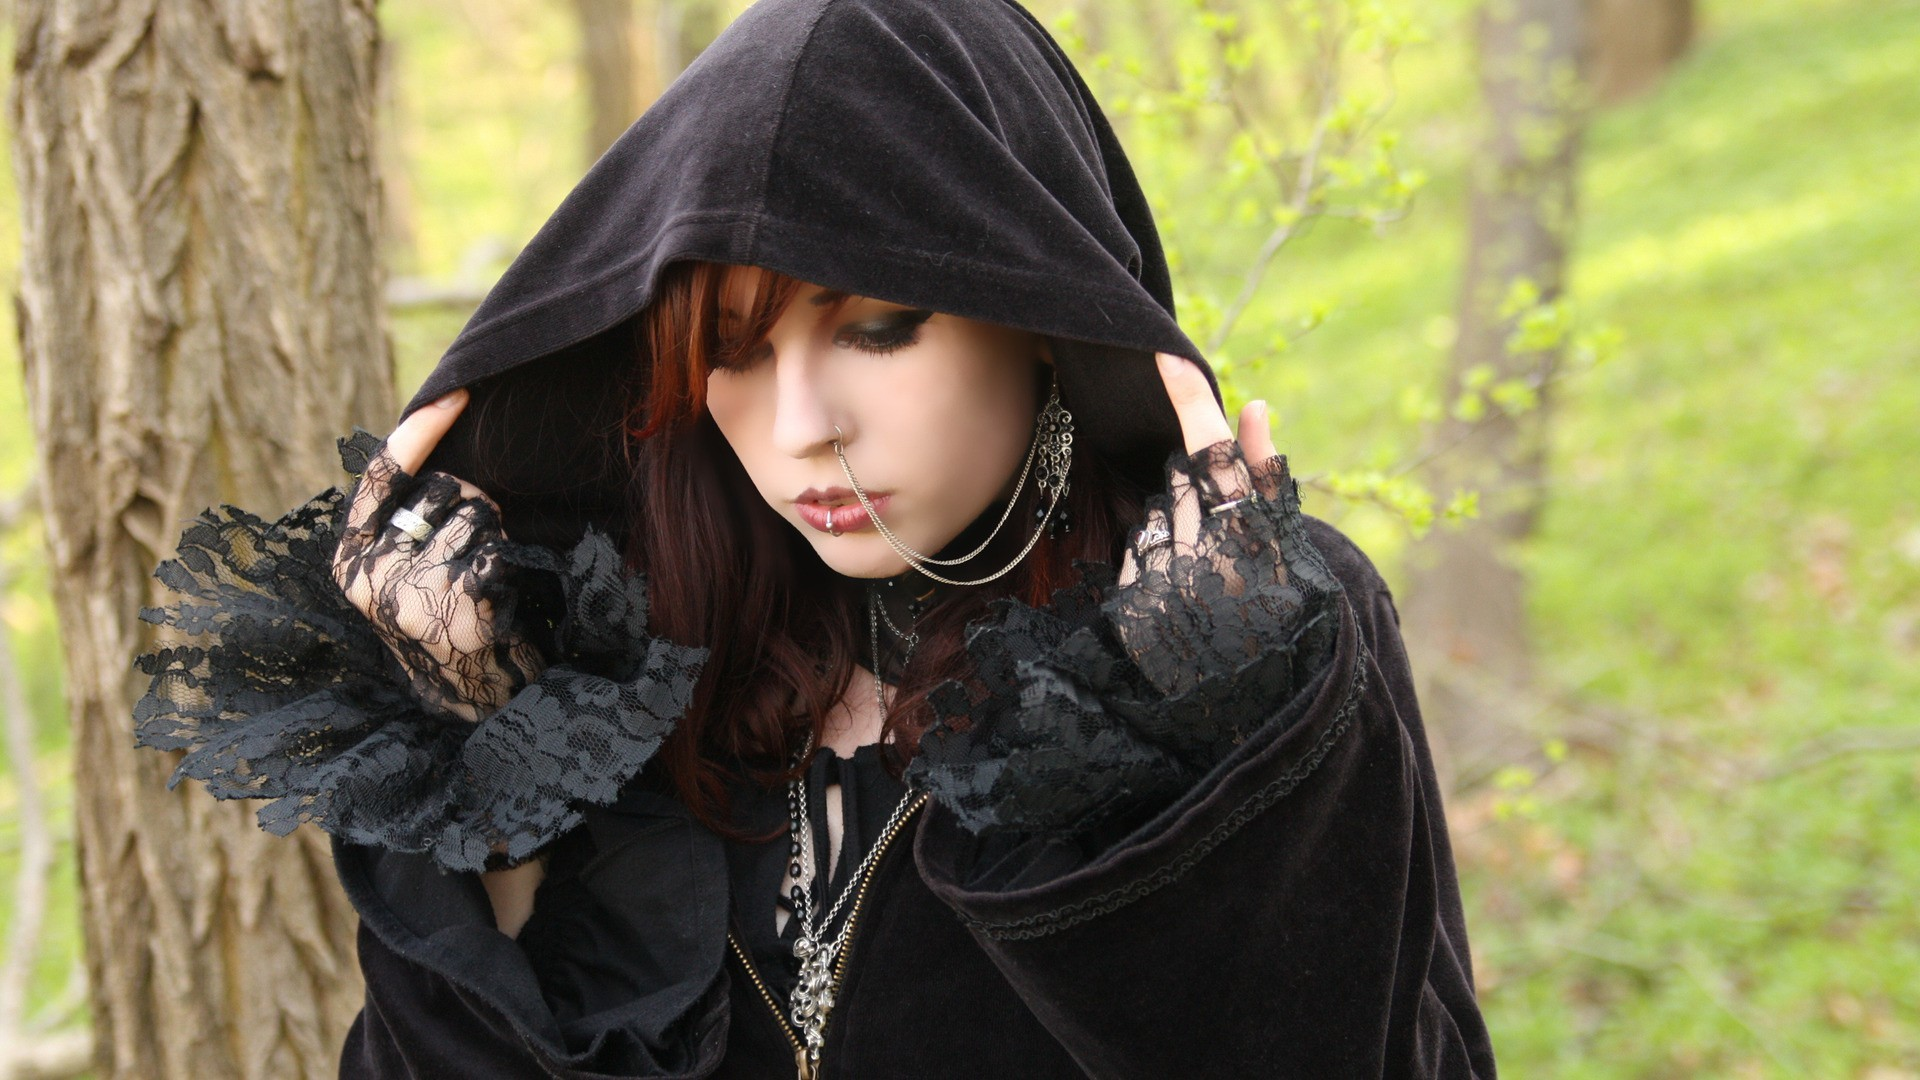 Gothic woman piercings forests hooded